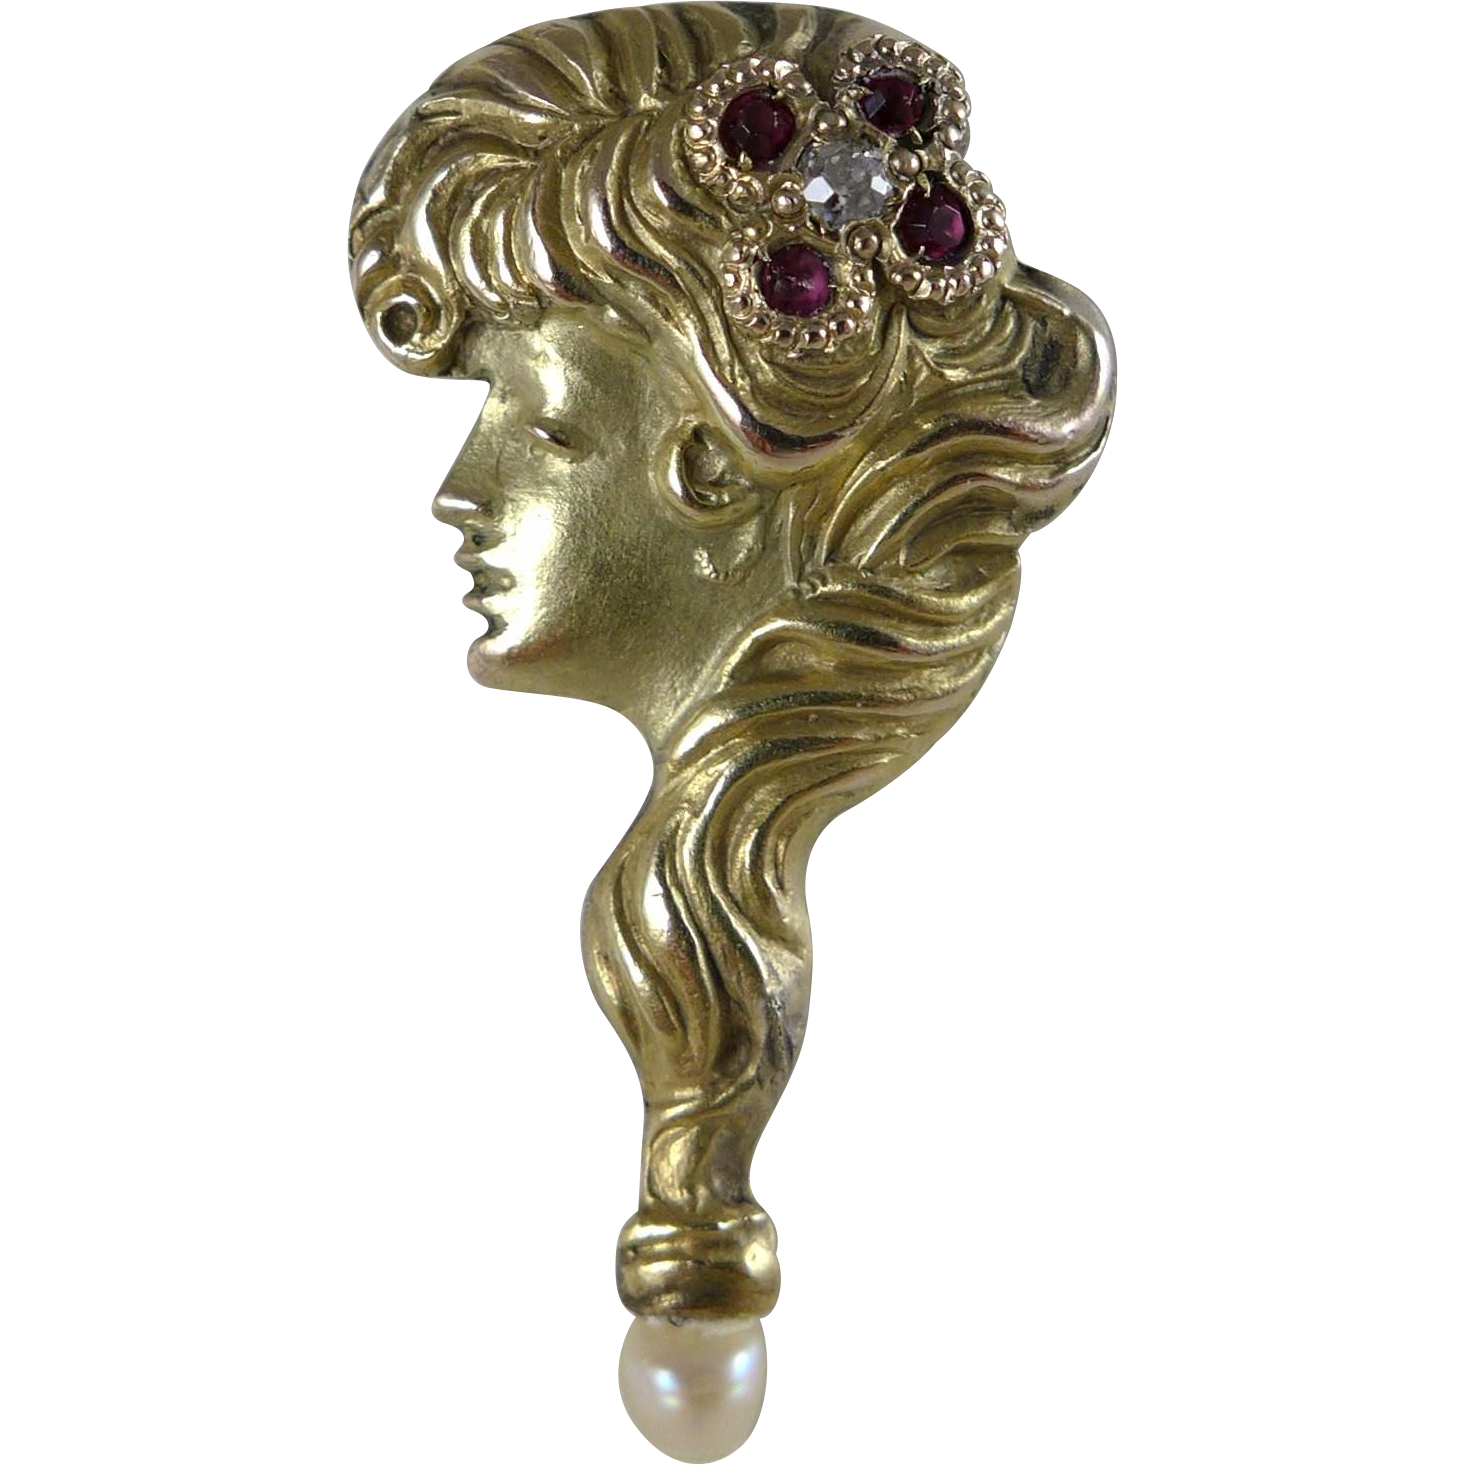 Antique 10K Gold Gibson Girl Stickpin / Stick Pin, Art Nouveau